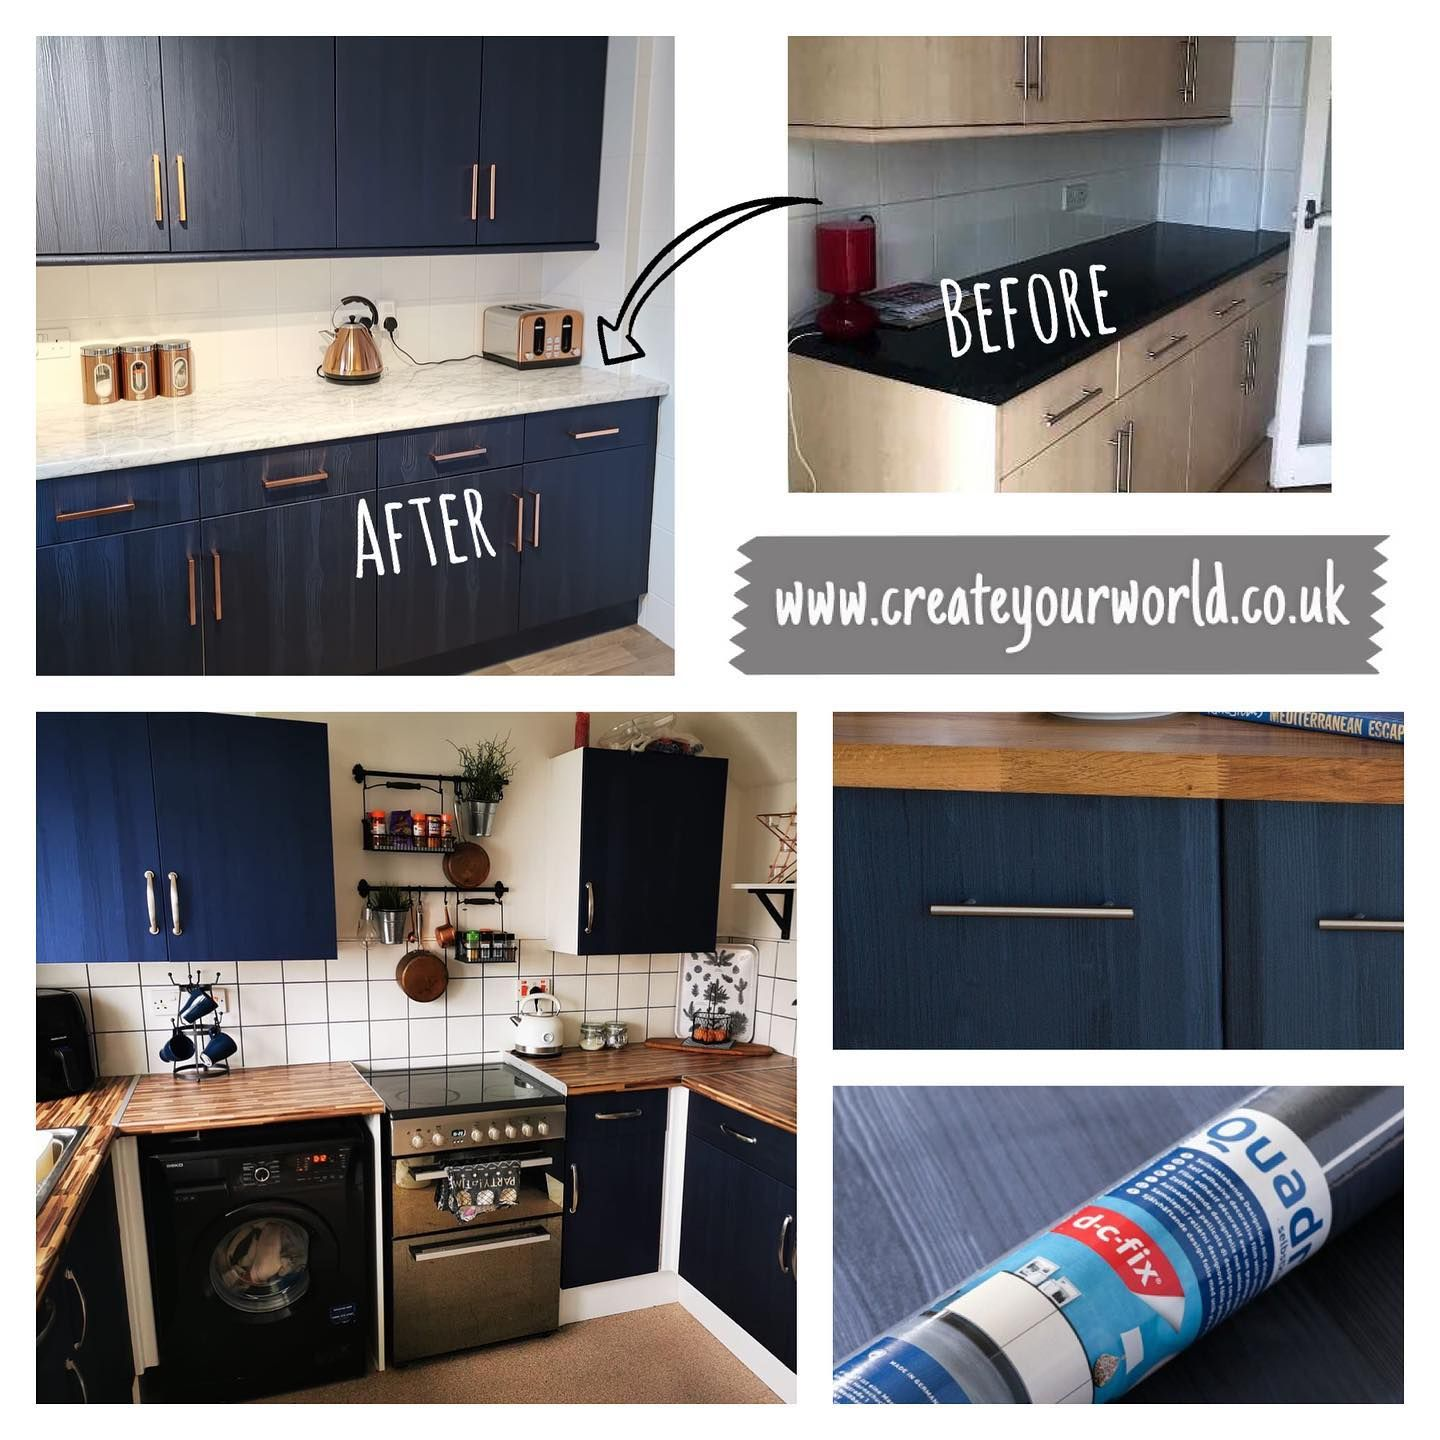 Get That Navy Blue Kitchen You Ve Been Dreaming About For Only 40 Amazing Value For This High Quality Vinyl Call In 2020 Sticky Back Plastic Vinyl Wrap Kitchen Wrap